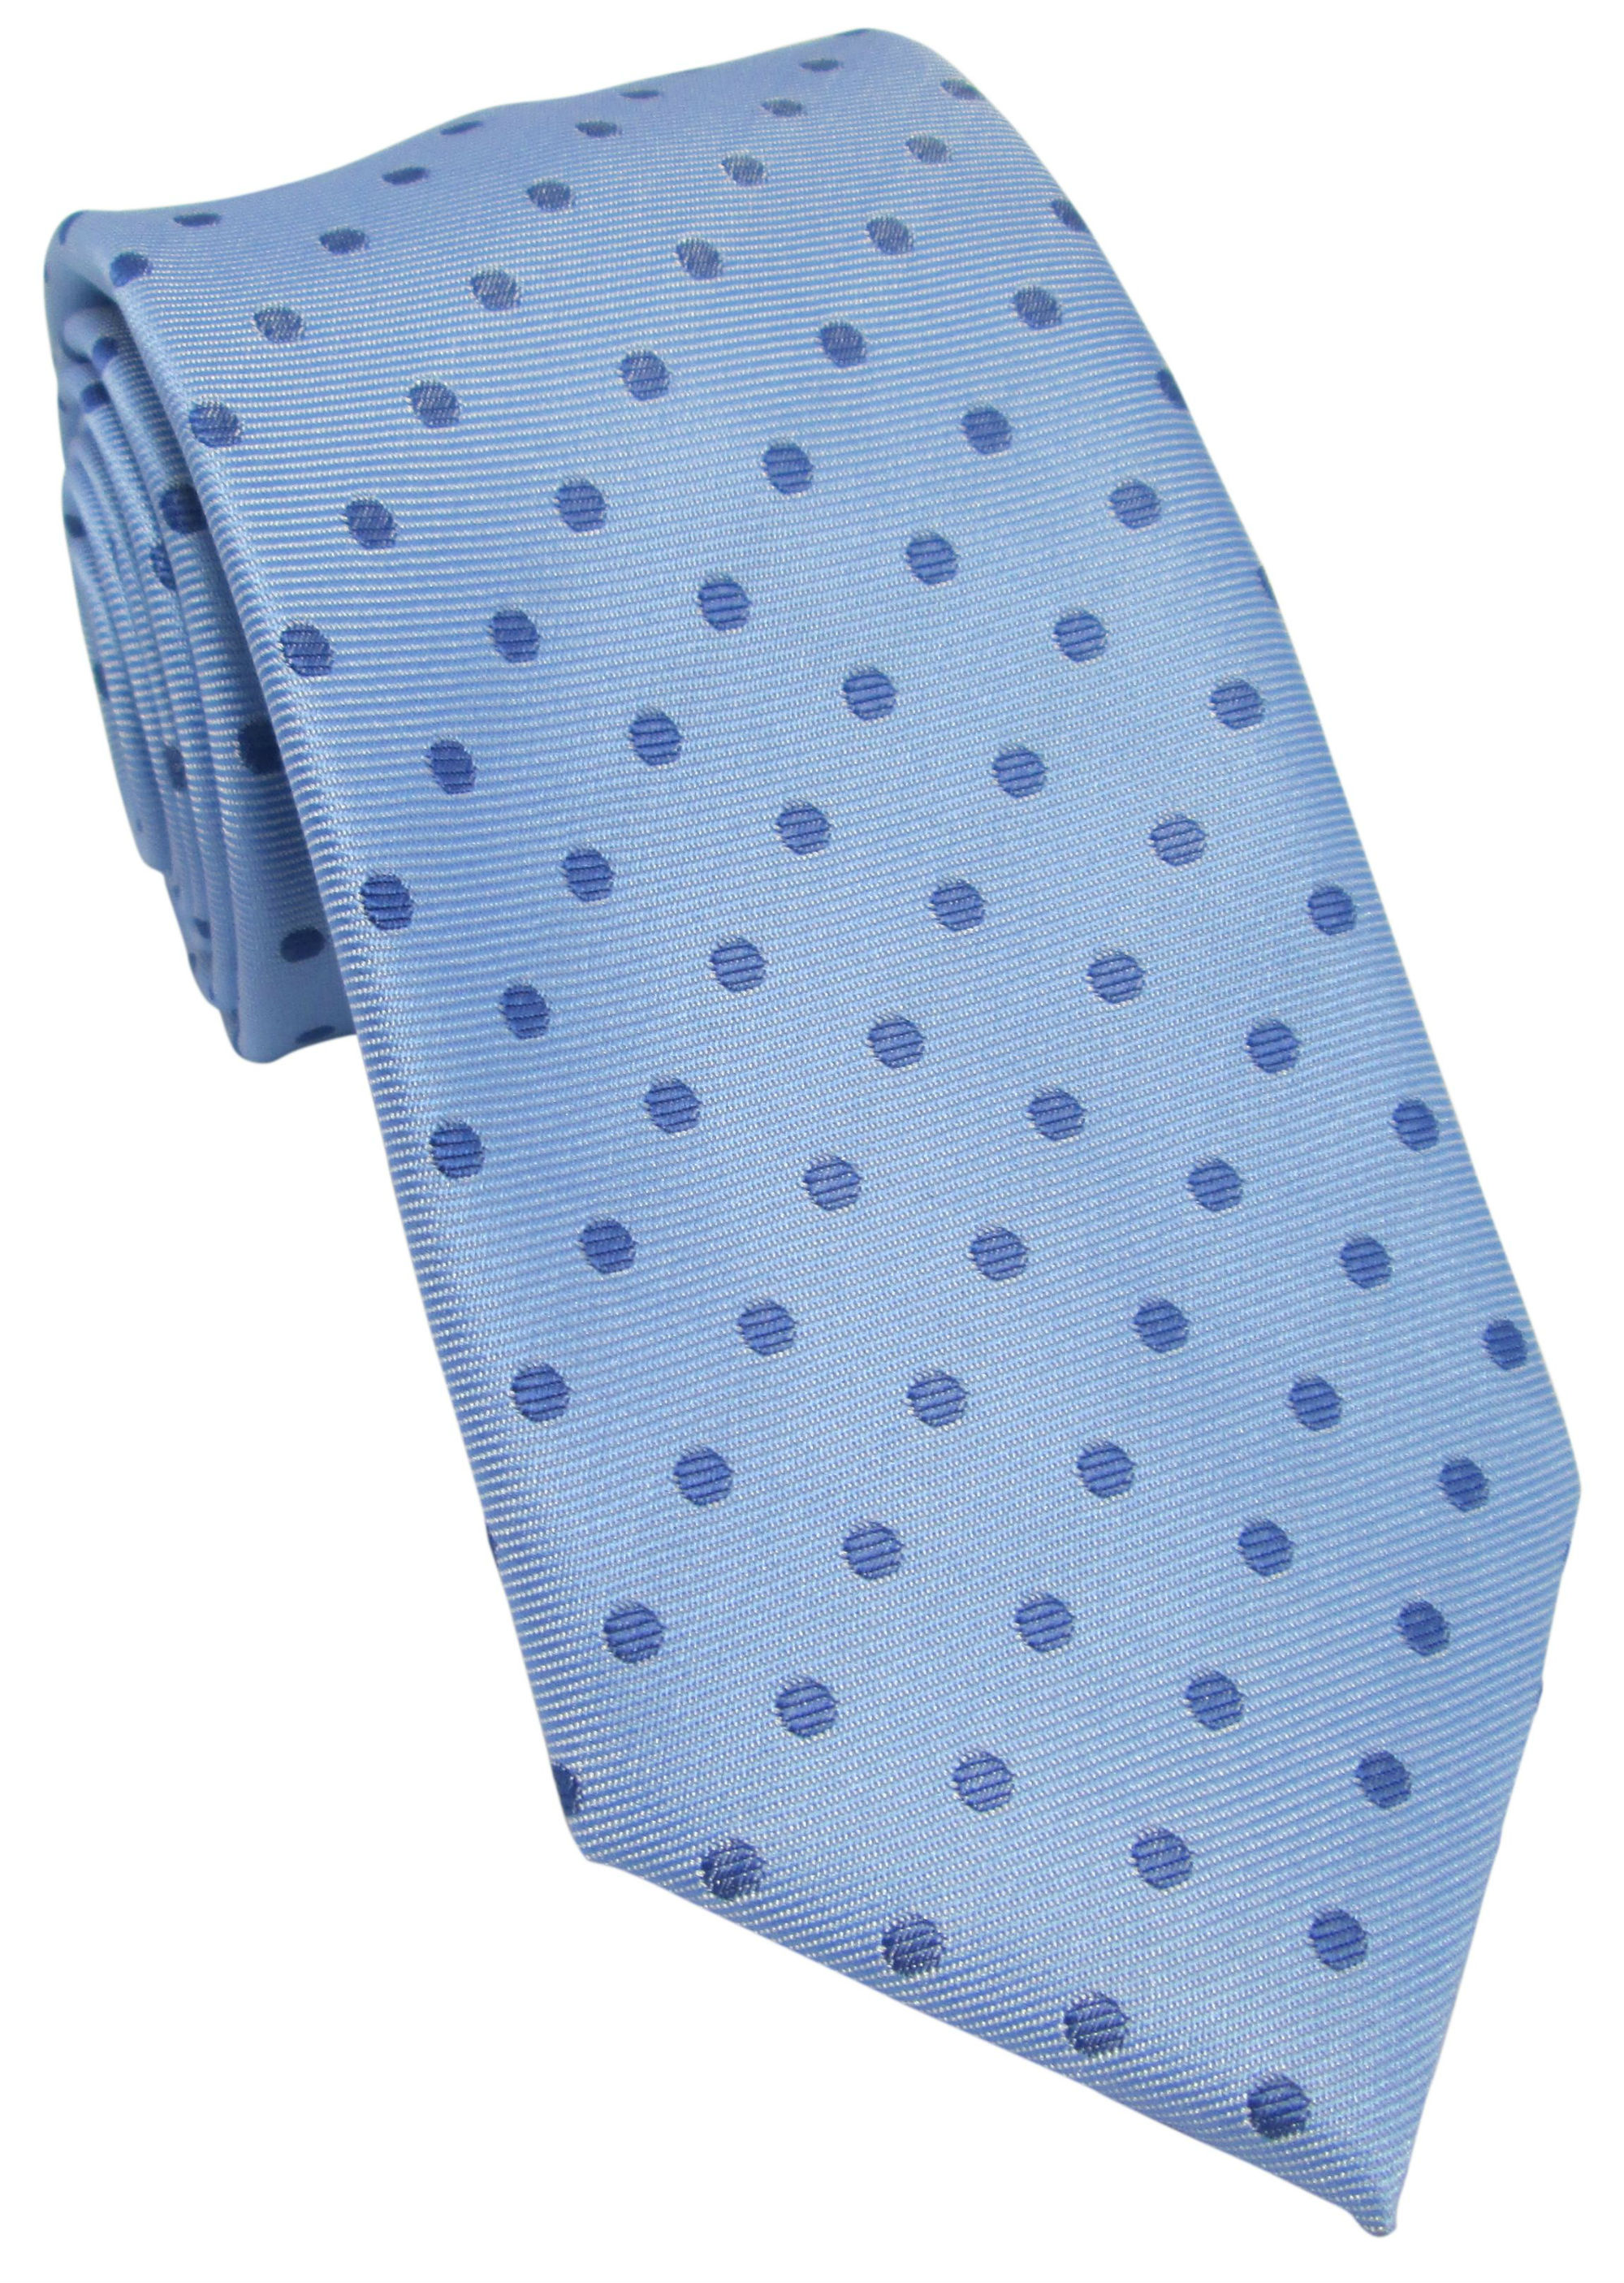 Sky Blue Tie with Blue Polka Dot